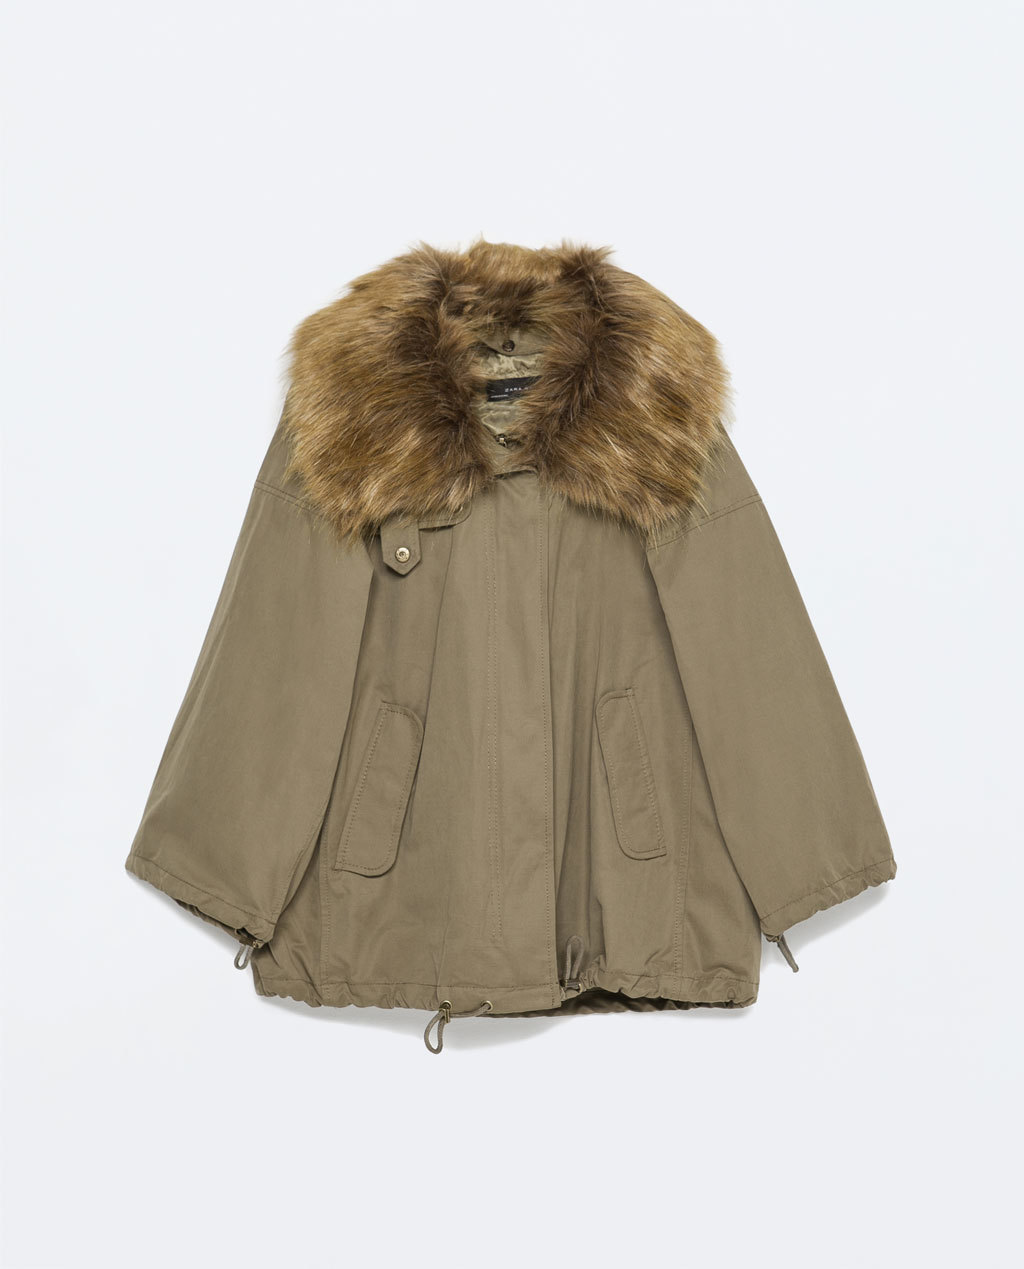 Cotton Parka - pattern: plain; length: standard; fit: loose; style: parka; secondary colour: tan; predominant colour: khaki; occasions: casual, creative work; fibres: cotton - mix; sleeve length: 3/4 length; sleeve style: standard; texture group: cotton feel fabrics; collar: fur; collar break: medium; pattern type: fabric; embellishment: fur; season: s/s 2015; wardrobe: highlight